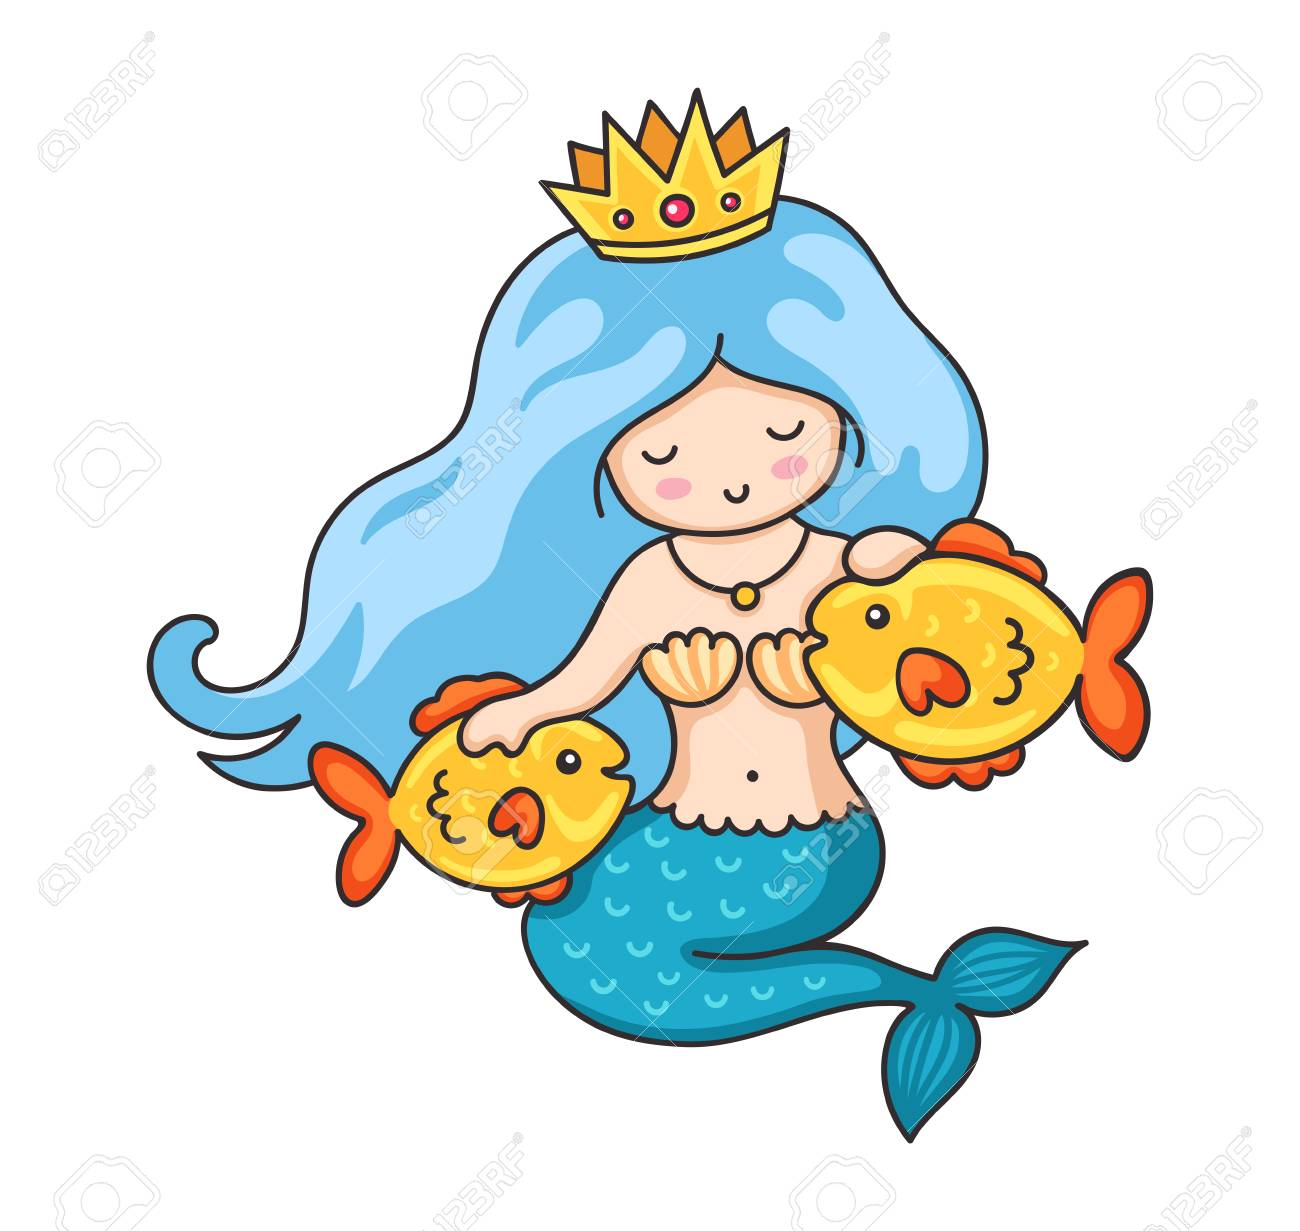 Cute Princess Mermaid With Crown And Two Golden Fish Cartoon Royalty Free Cliparts Vectors And Stock Illustration Image 112311557 Последние твиты от a mermaids crown (@amermaidscrown). cute princess mermaid with crown and two golden fish cartoon